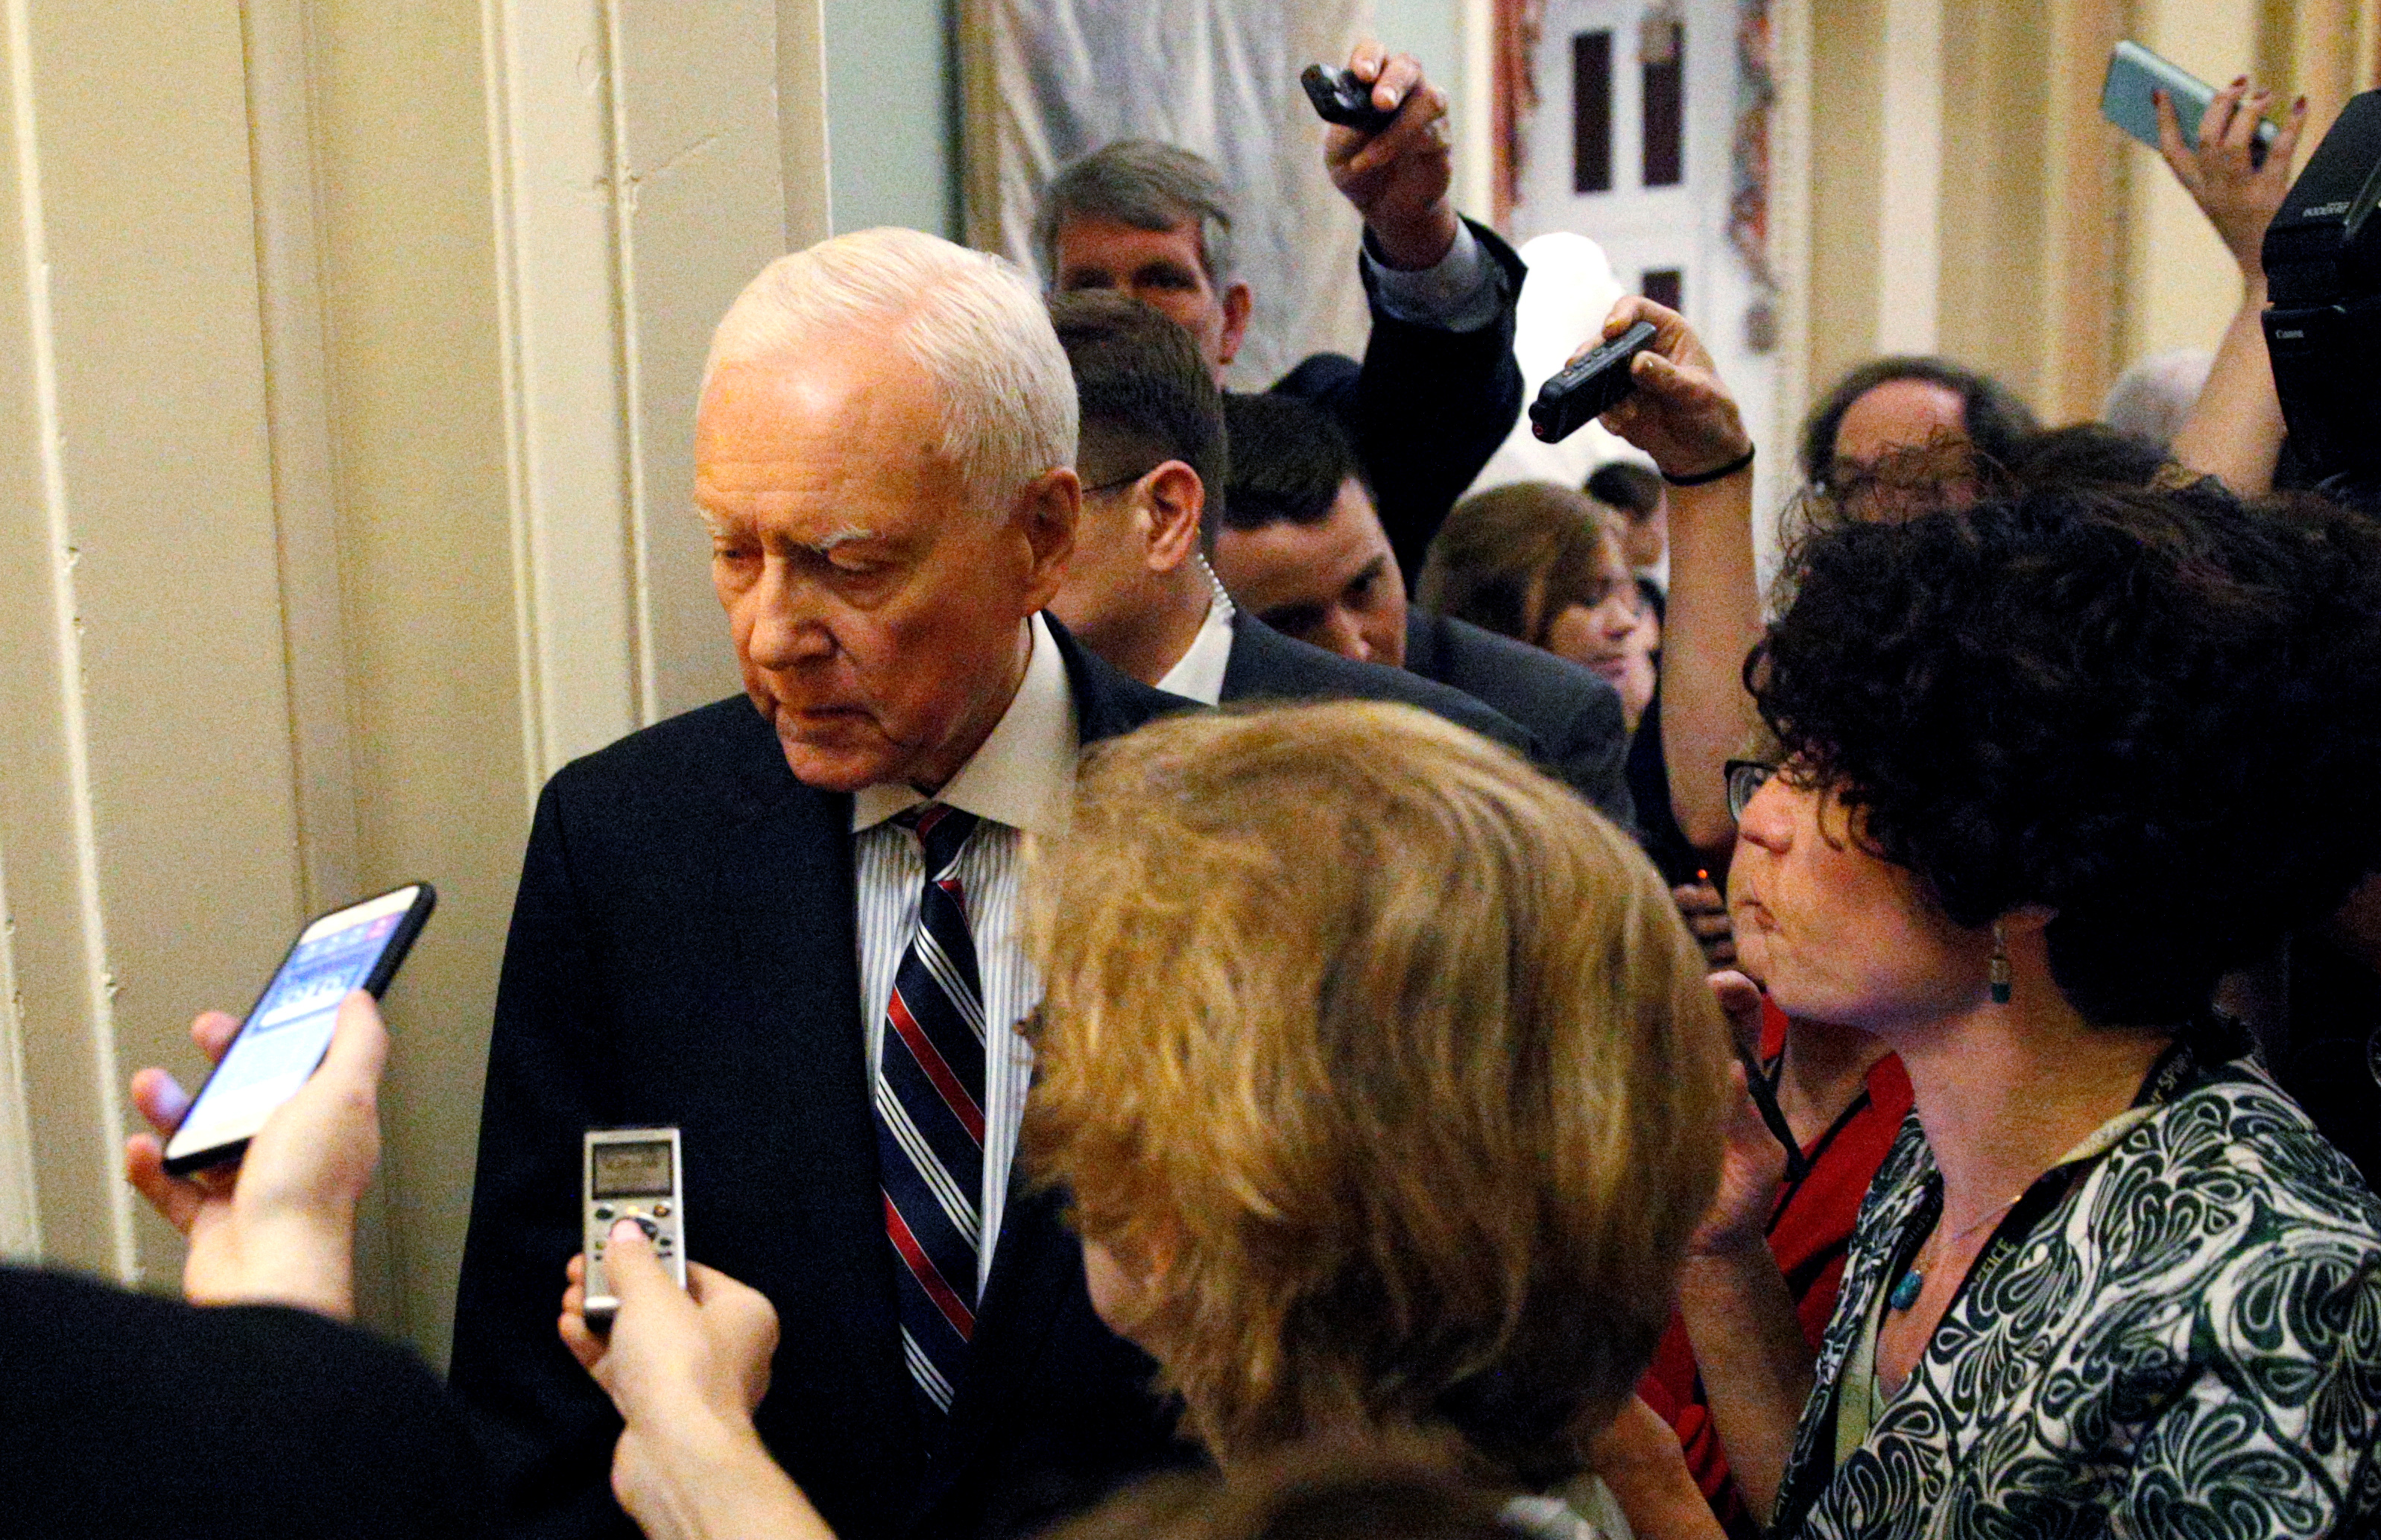 Senate Finance Chairman Orrin Hatch (R-UT) is surrounded by reporters as he departs a meeting where the Senate Republican draft bill on healthcare was unveiled in the U.S. Capitol in Washington, June 22, 2017.  REUTERS/Kevin Lamarque - RTS1891I